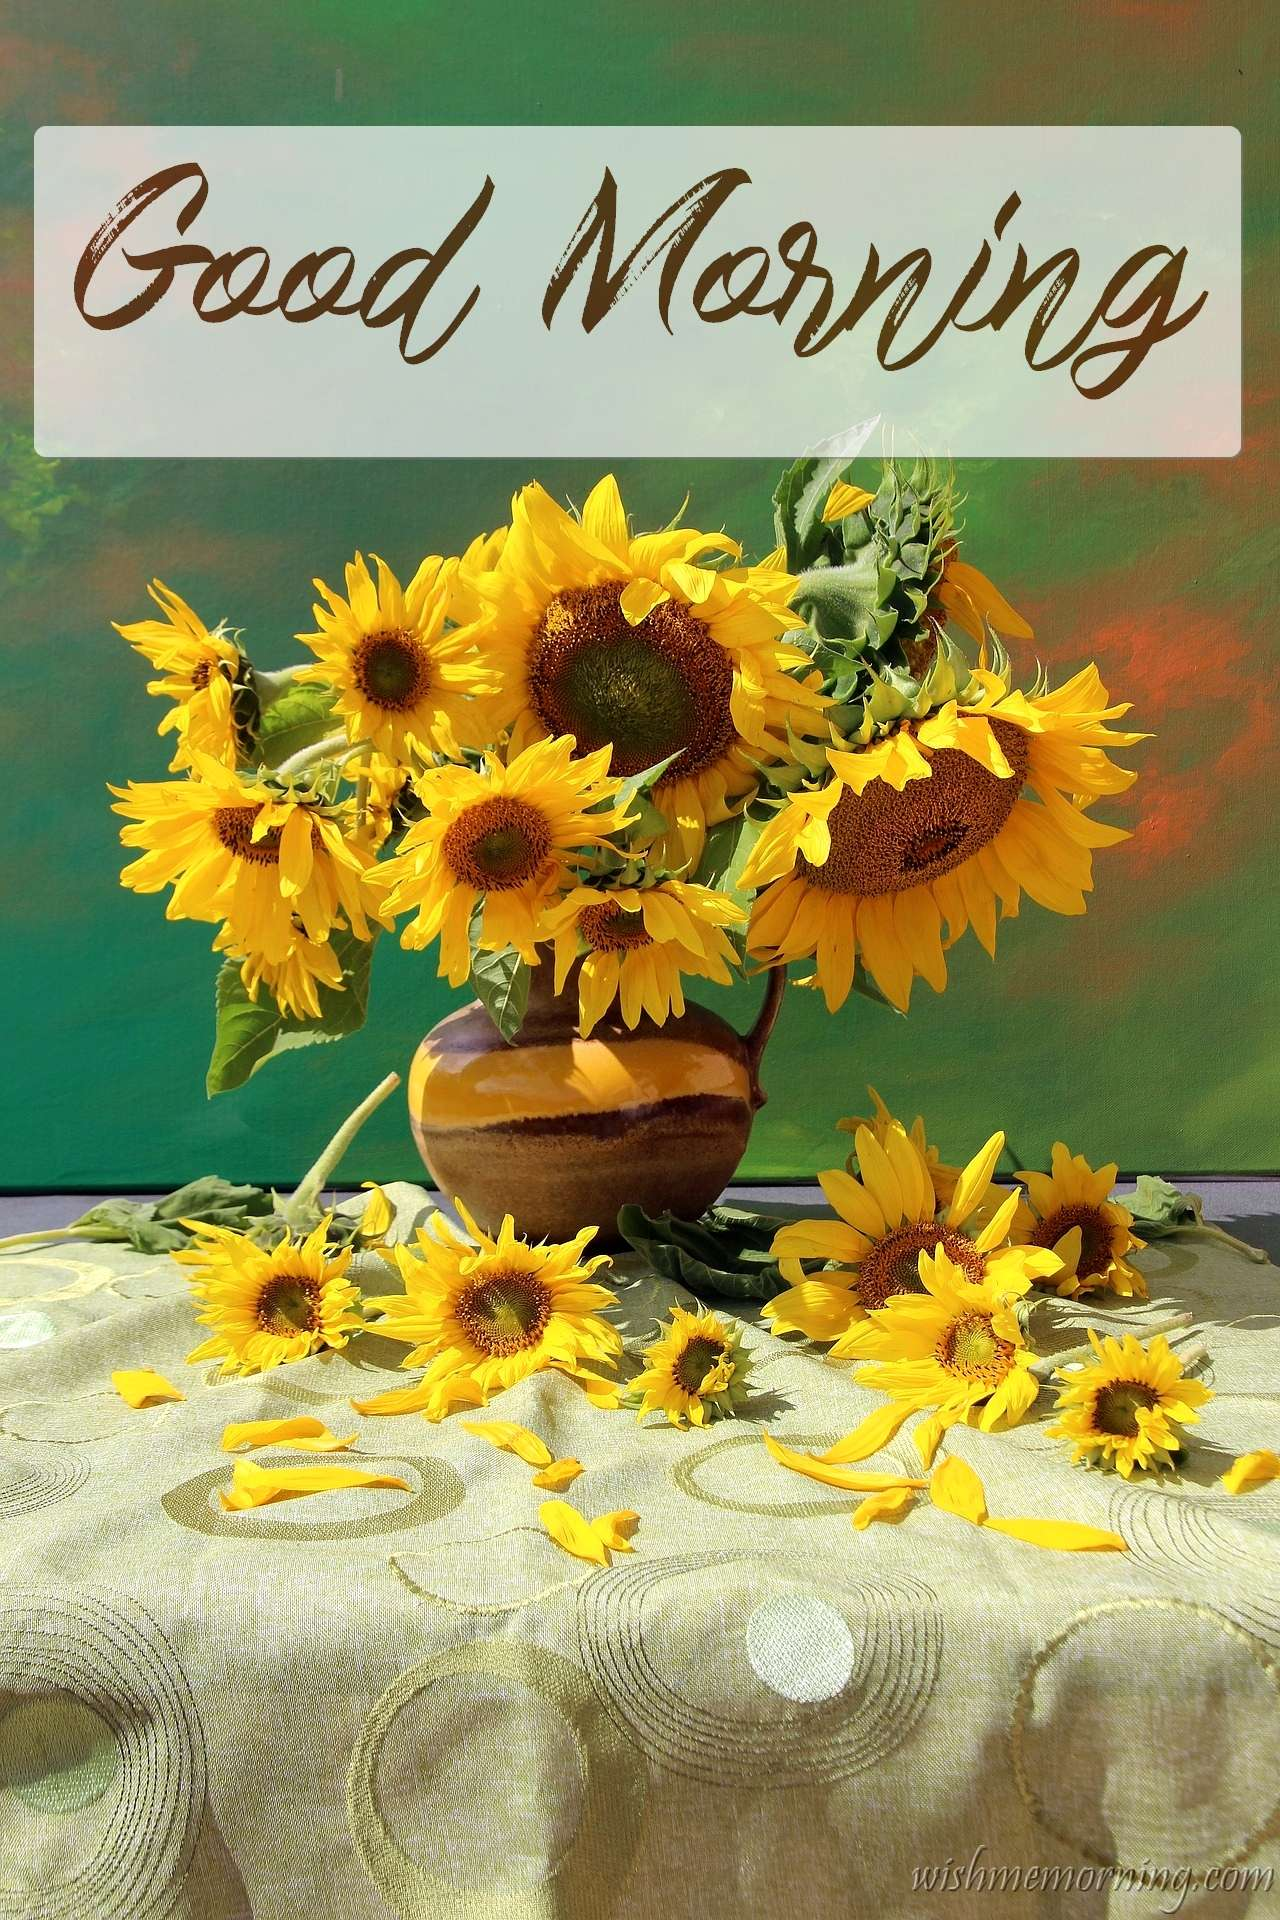 Bunch of Yellow Sunflowers in Pot On Table Good Morning Image